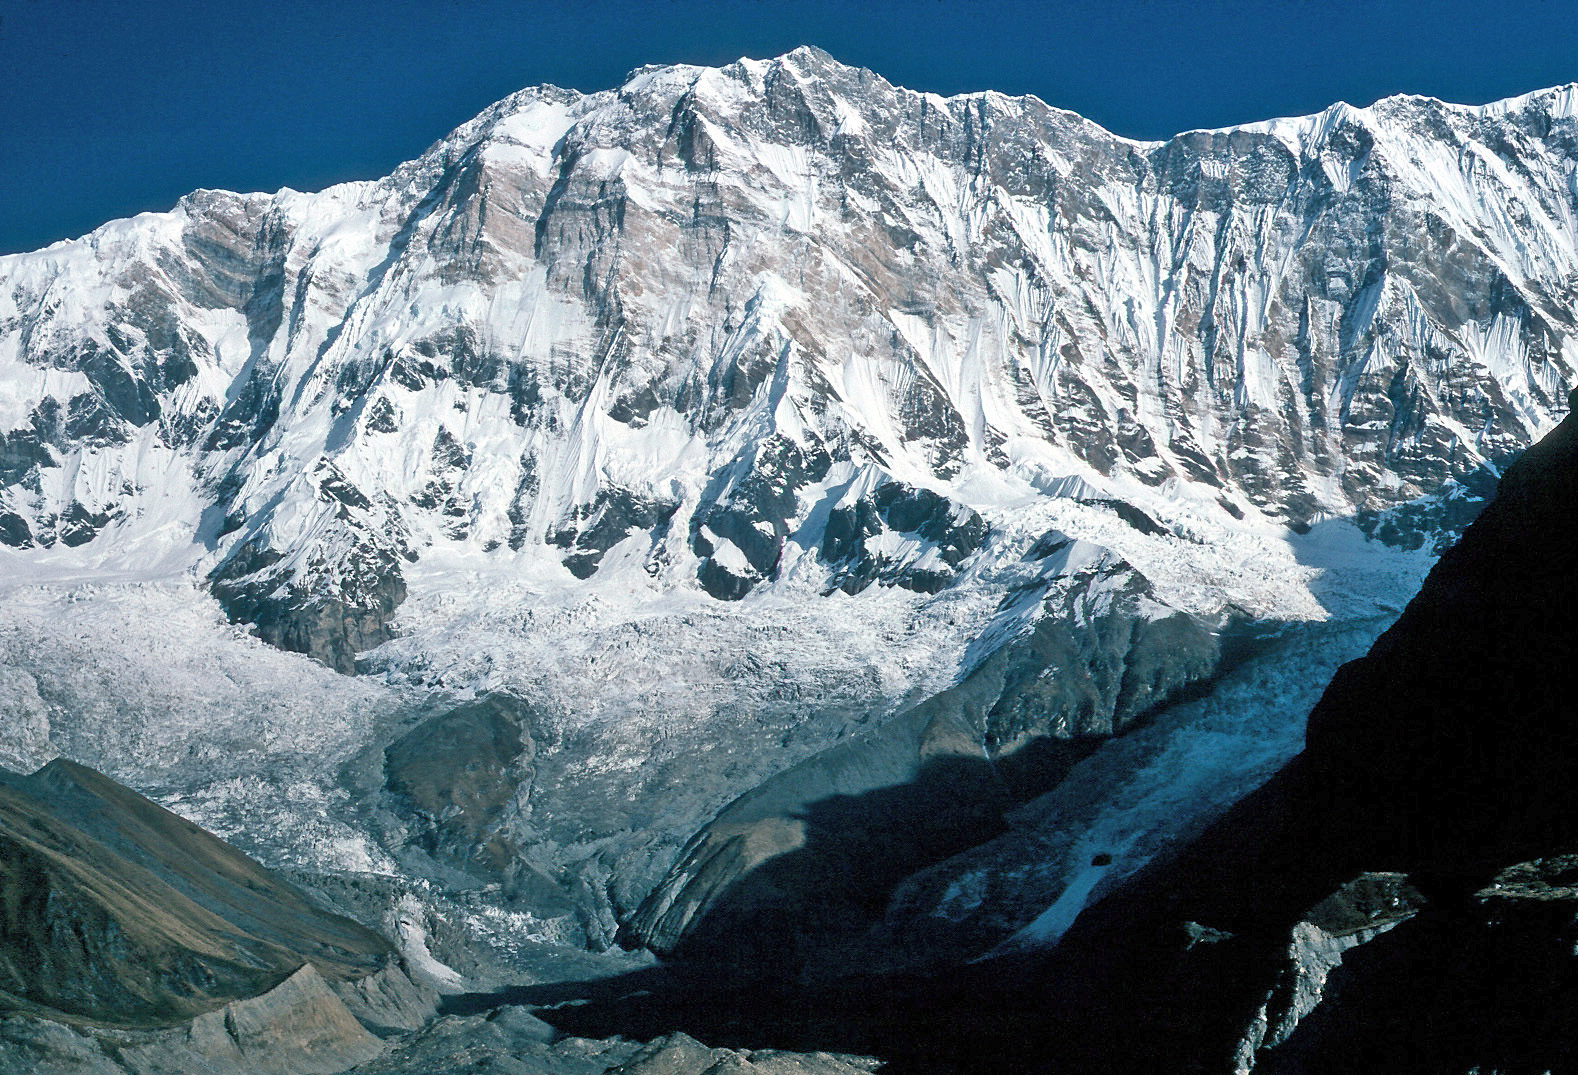 http://upload.wikimedia.org/wikipedia/commons/2/29/Annapurna_I.jpg